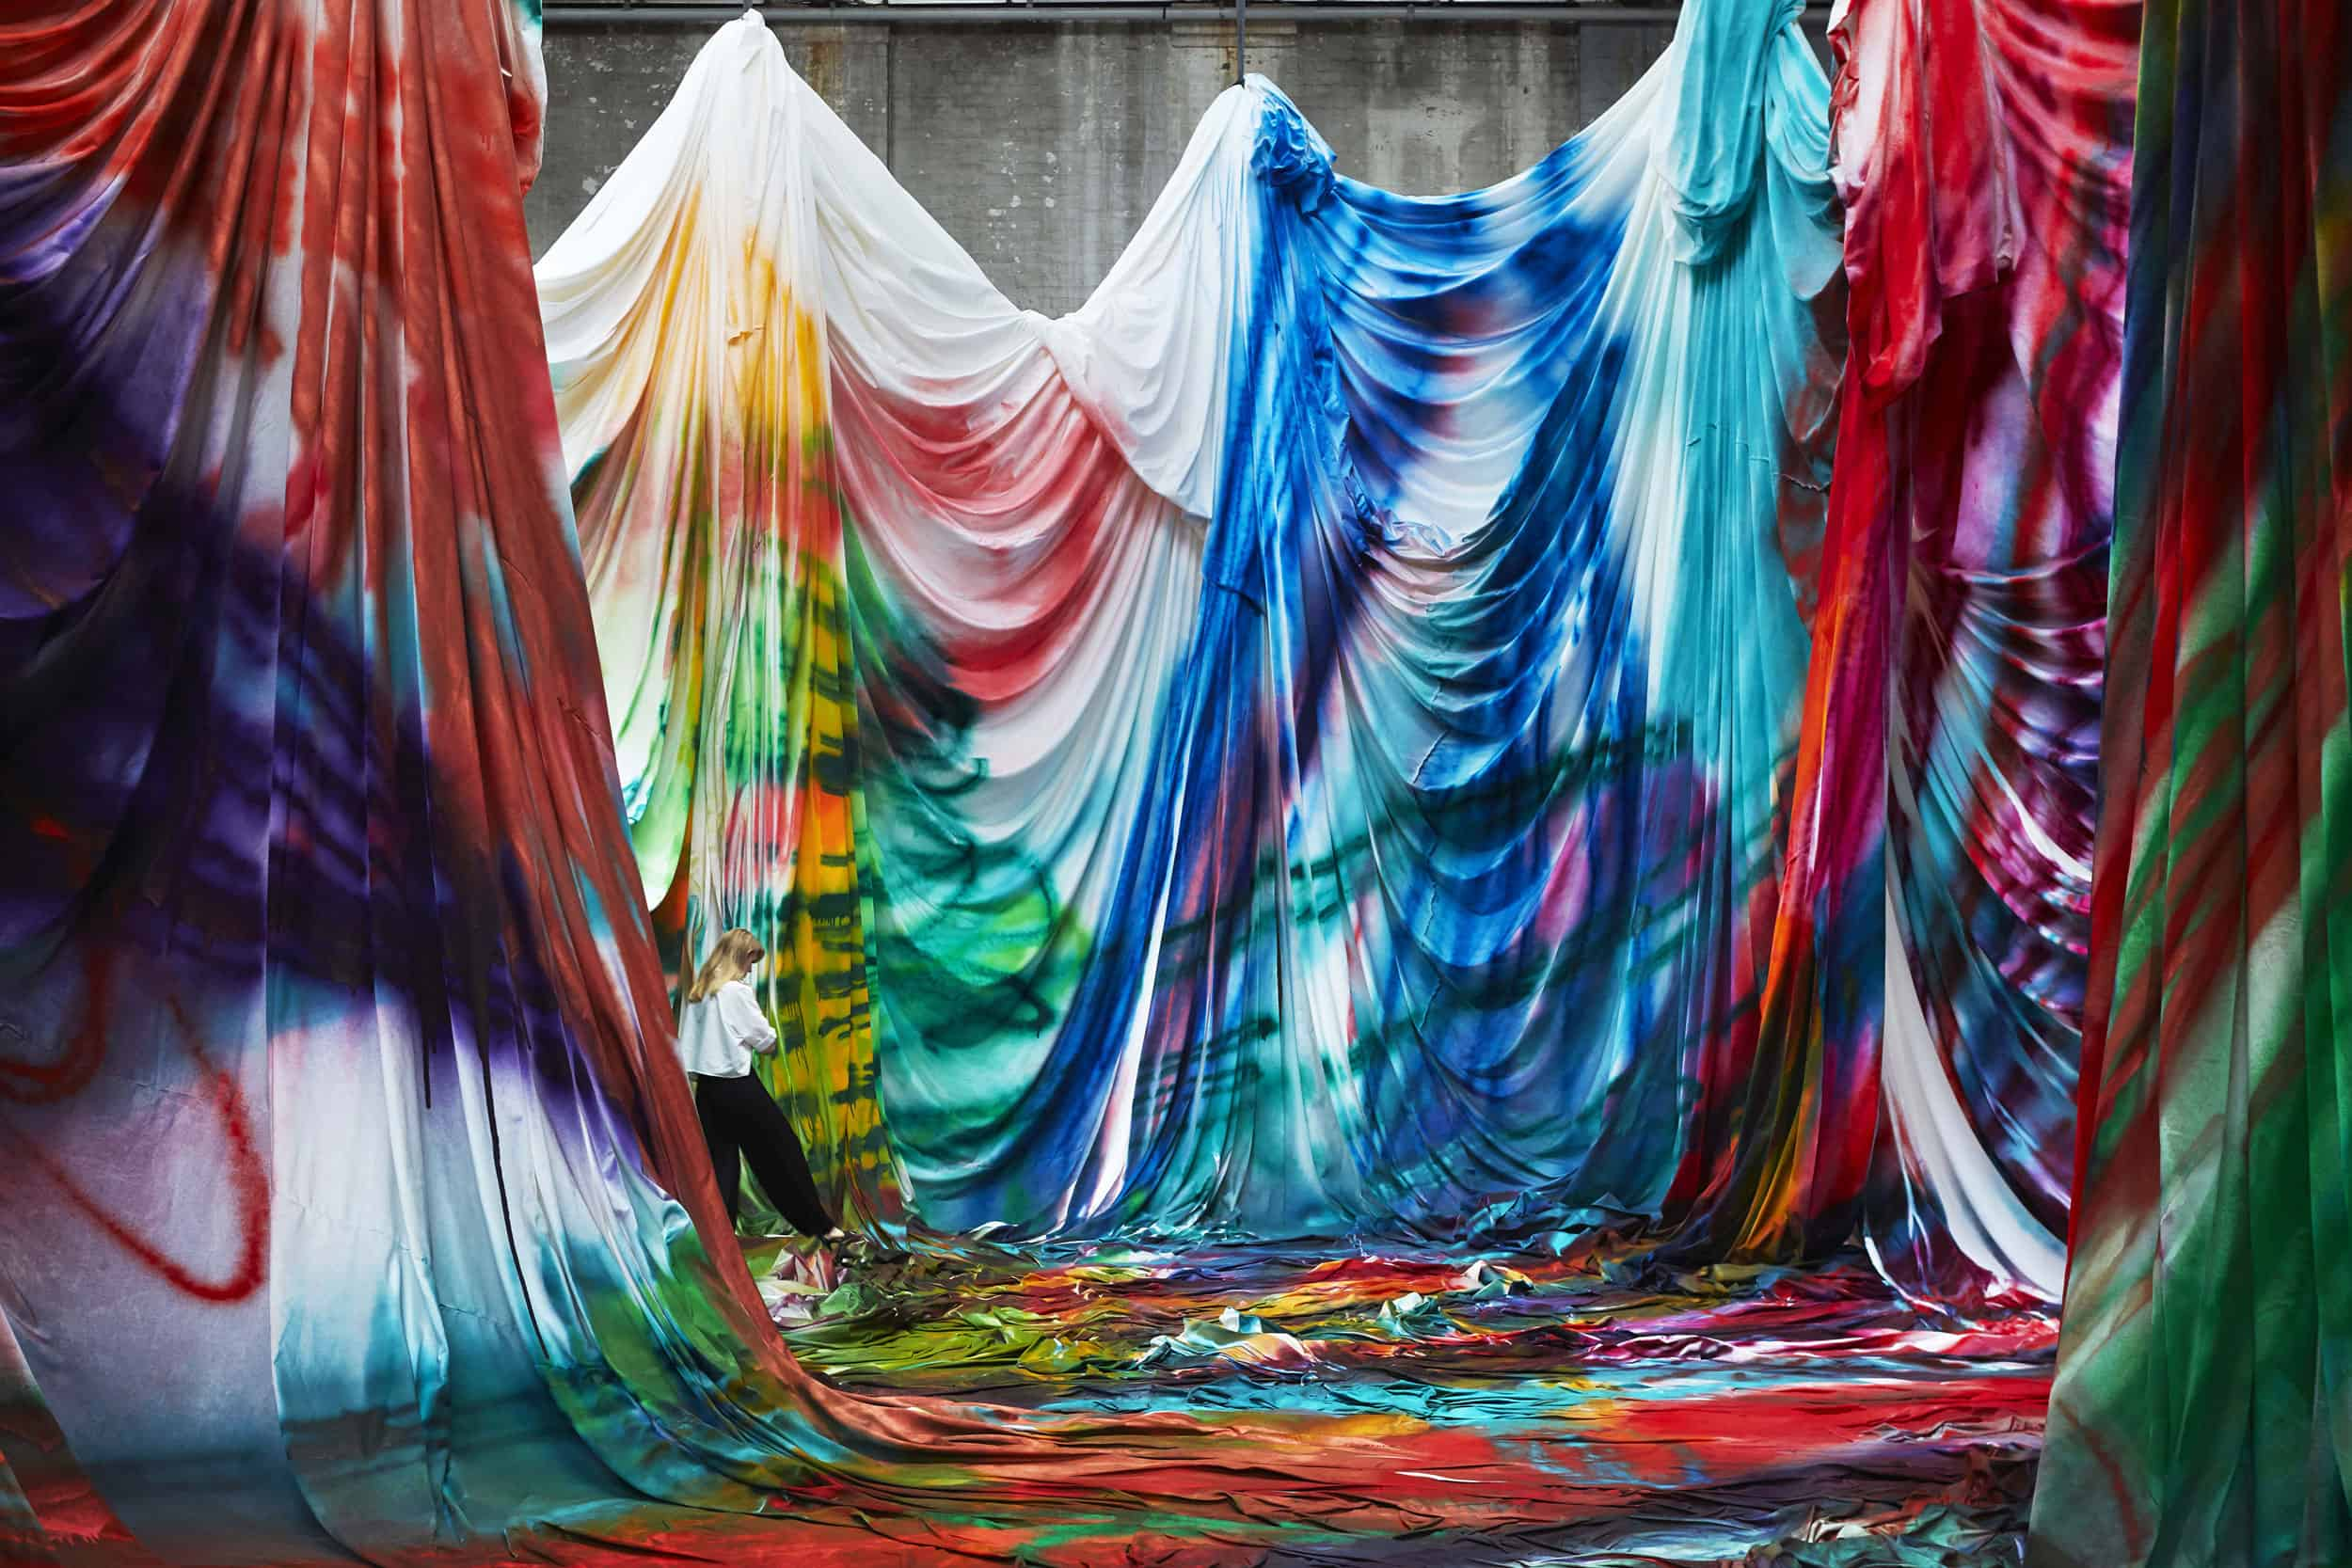 Katharina Grosse, The Horse Trotted Another Couple of Metres, Then It Stopped, 2018, Carriageworks, Sydney, acrylic on fabric, 1.000 x 4.600 x 1.500 cm; Soil, wood, acrylic, styrofoam, clothing, acrylic on glass-fibre, reinforced plastic, © Katharina Grosse and VG Bild-Kunst, Bonn, 2019 / Commissioned by Carriageworks, Sydney Courtesy Gagosian / Foto: Zan Wimberley